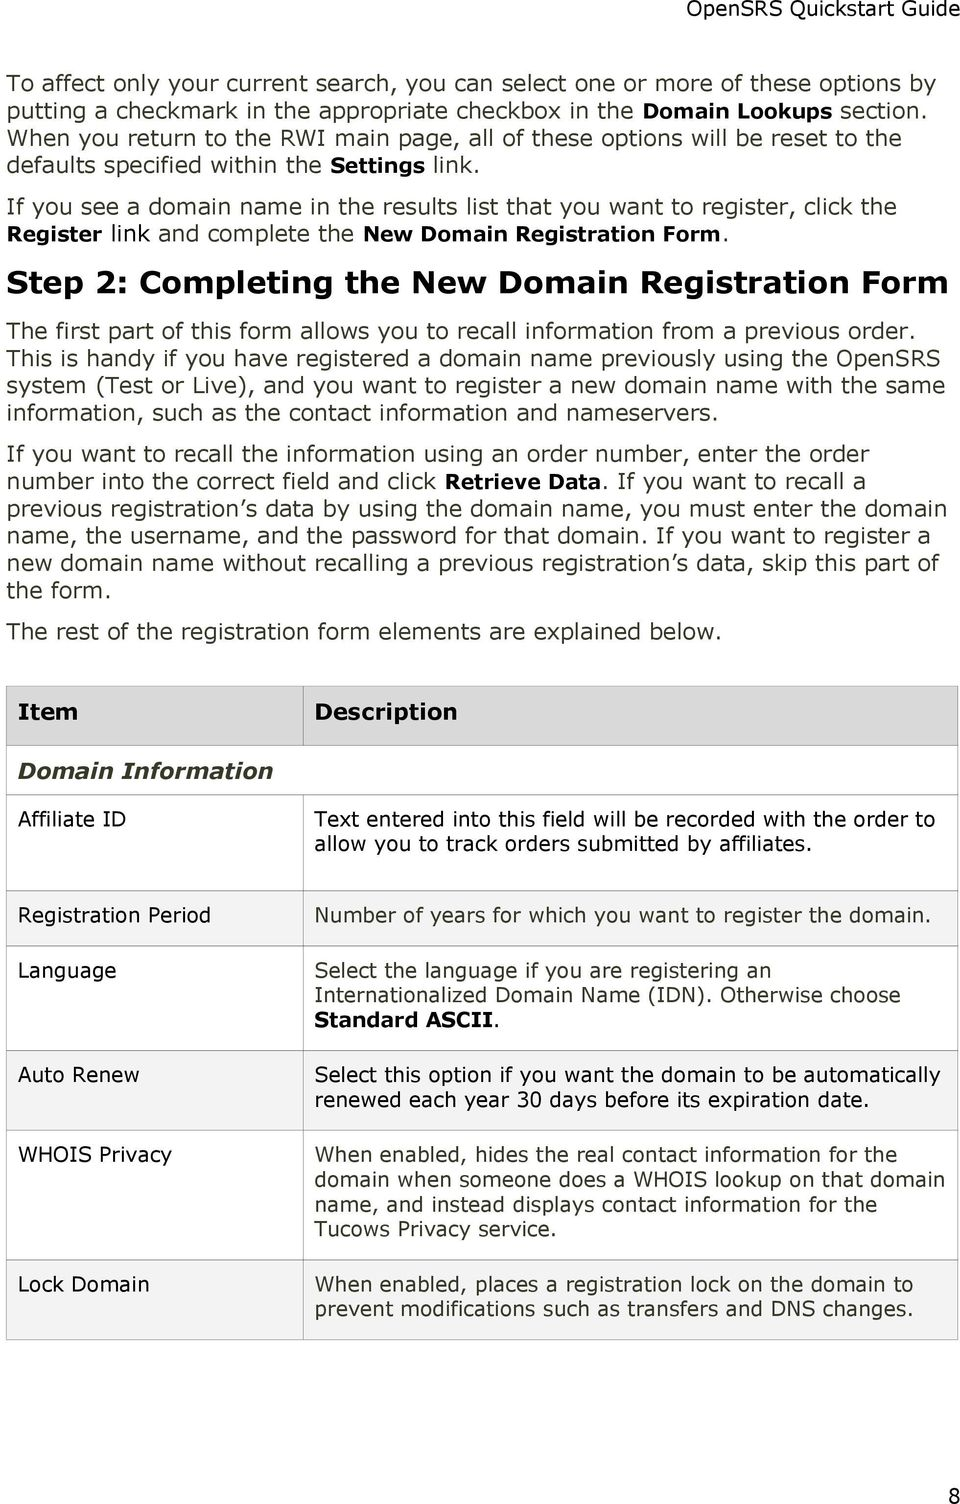 If you see a domain name in the results list that you want to register, click the Register link and complete the New Domain Registration Form.